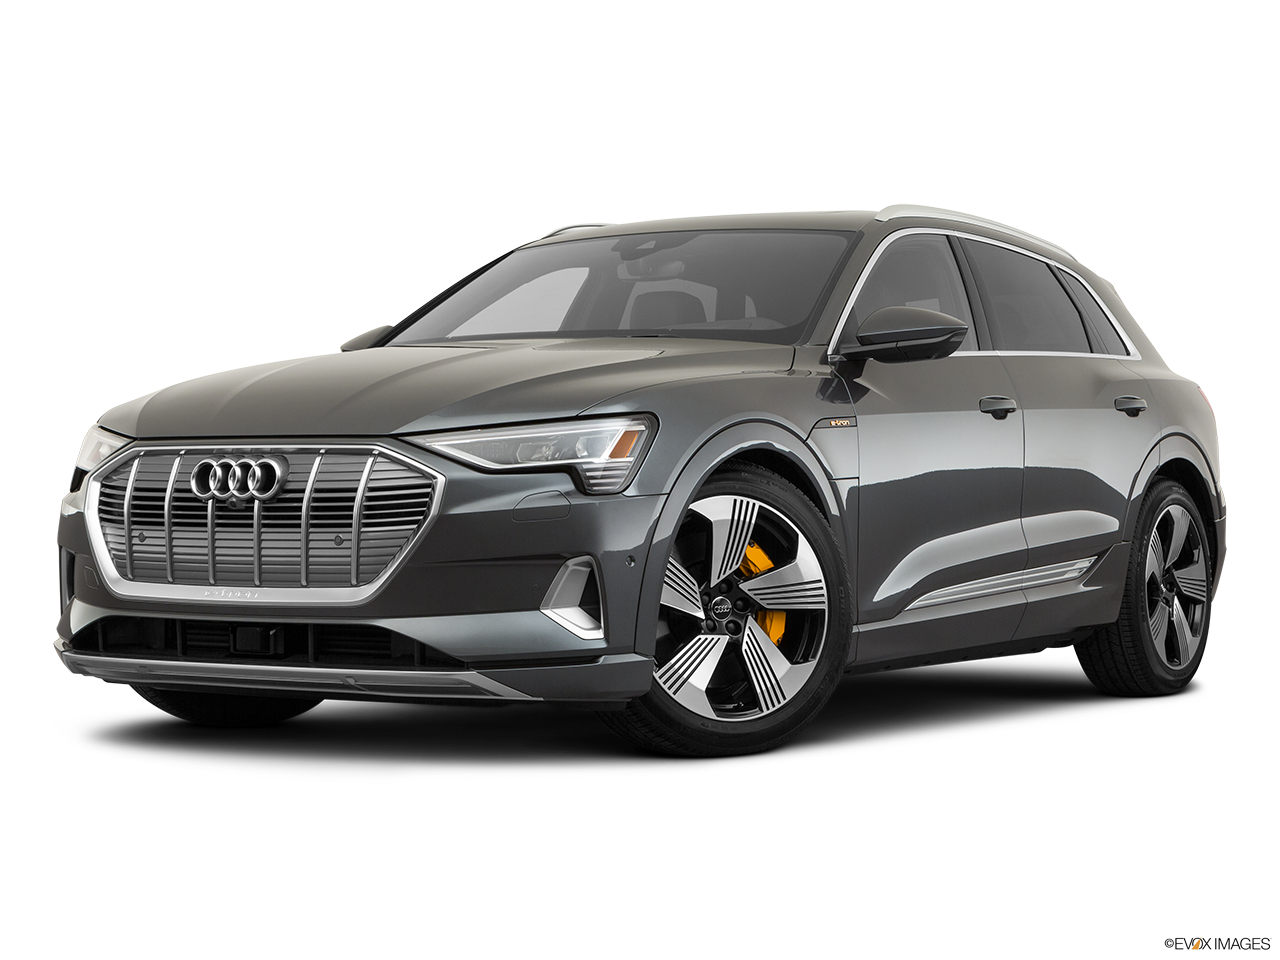 Three quart view of the Audi e-tron